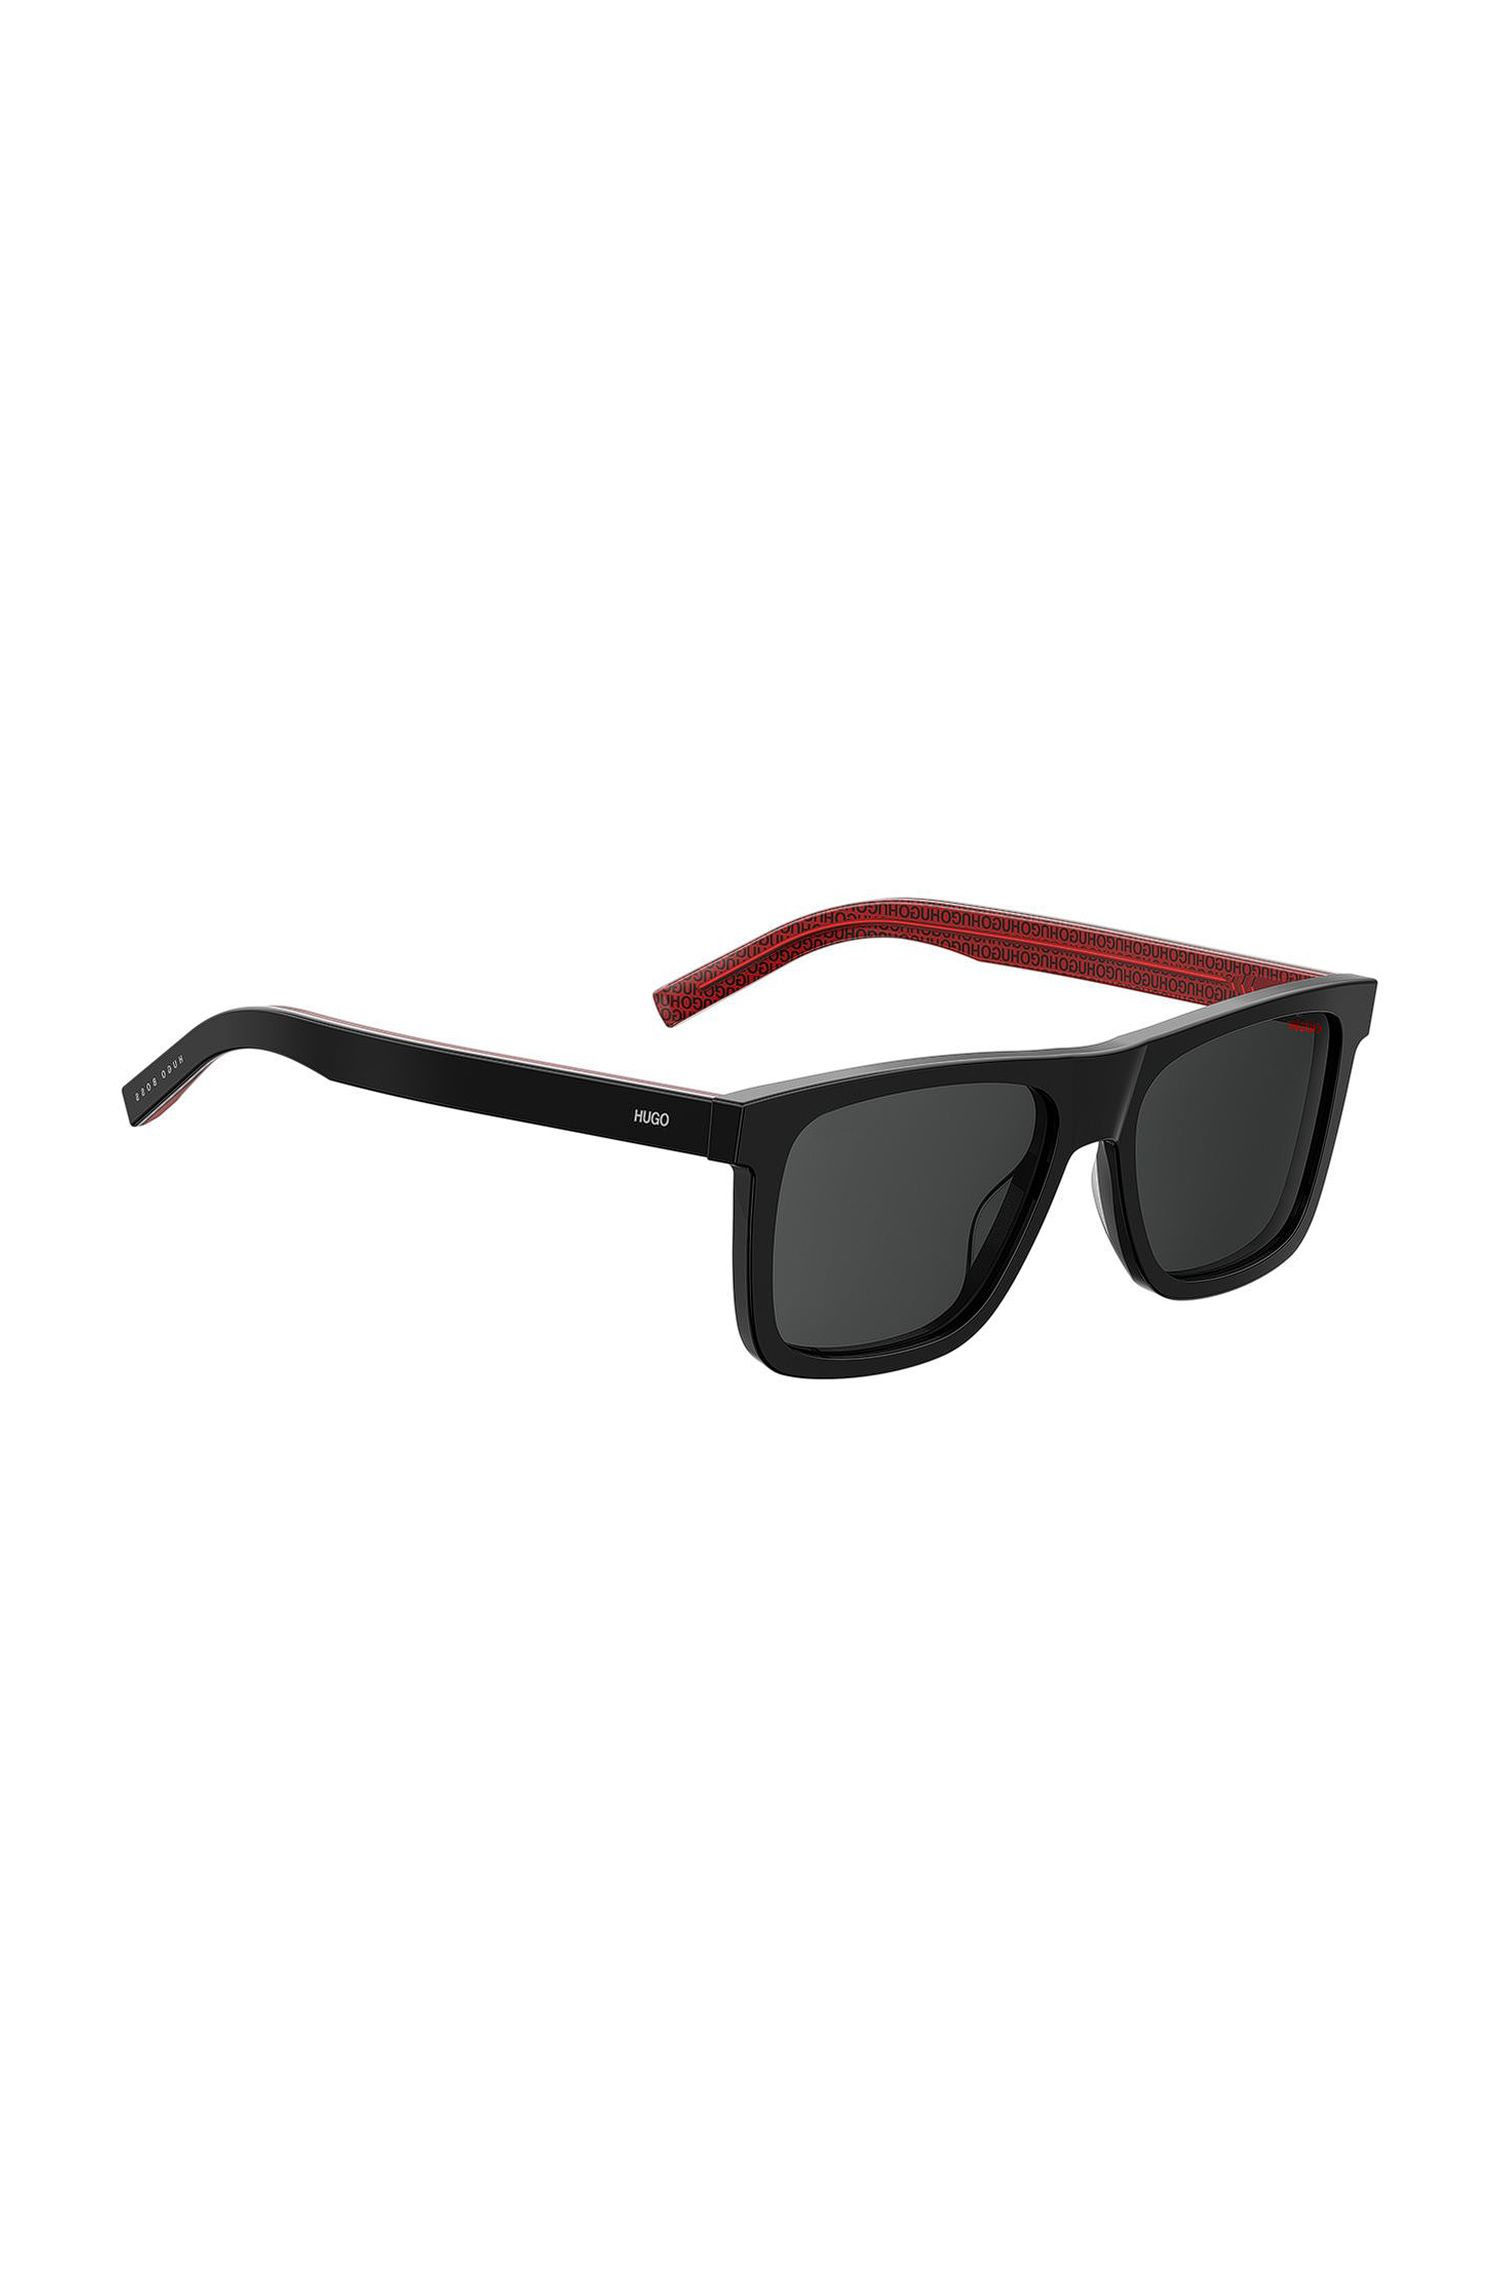 Full black acetate sunglasses with logo-patterned inner temples, Black